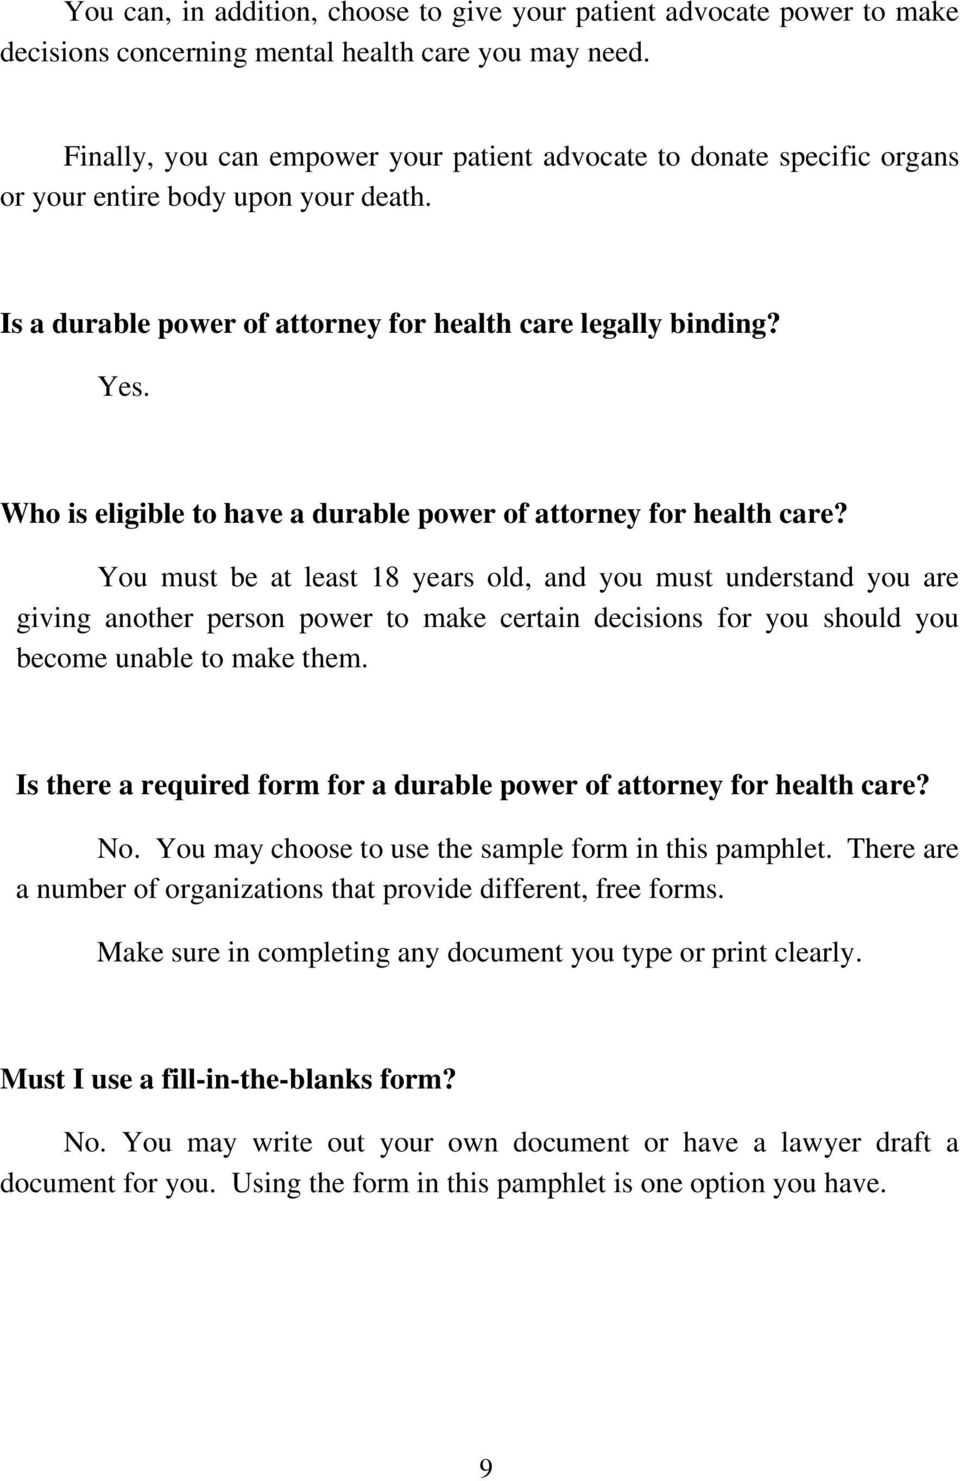 Who is eligible to have a durable power of attorney for health care?